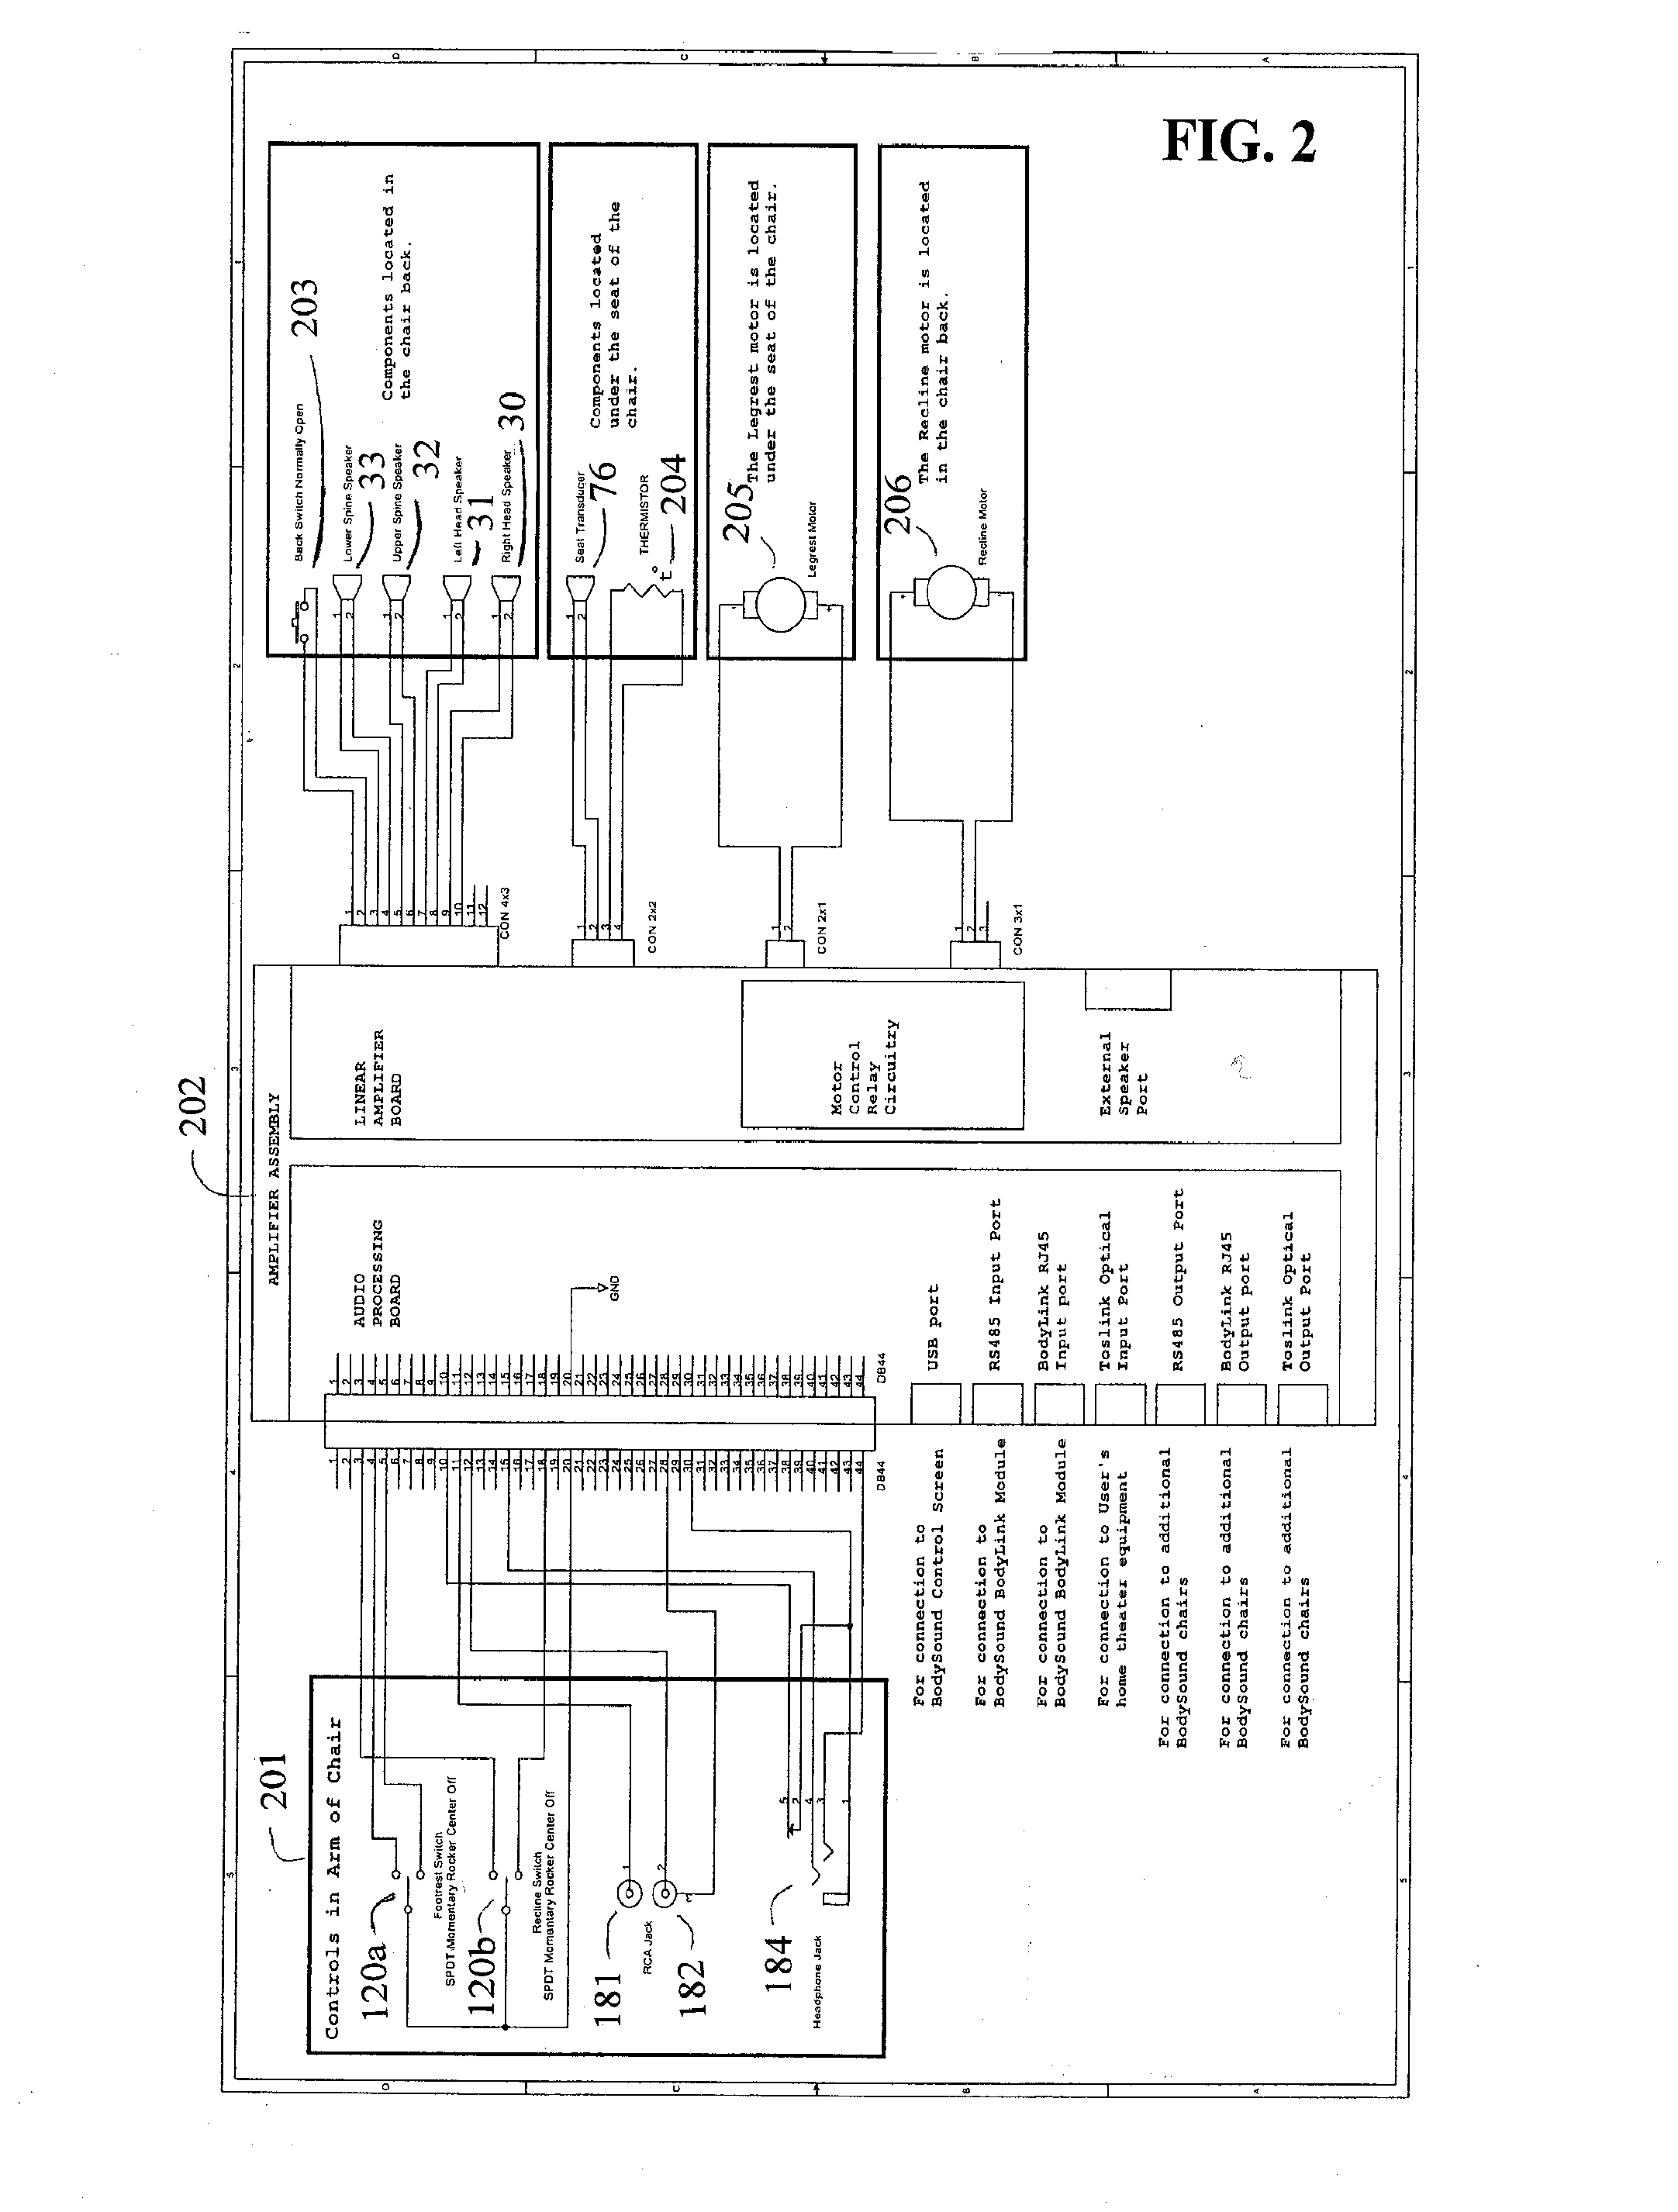 Lexus Es330 Fuse Box Diagram. Lexus. Auto Wiring Diagram